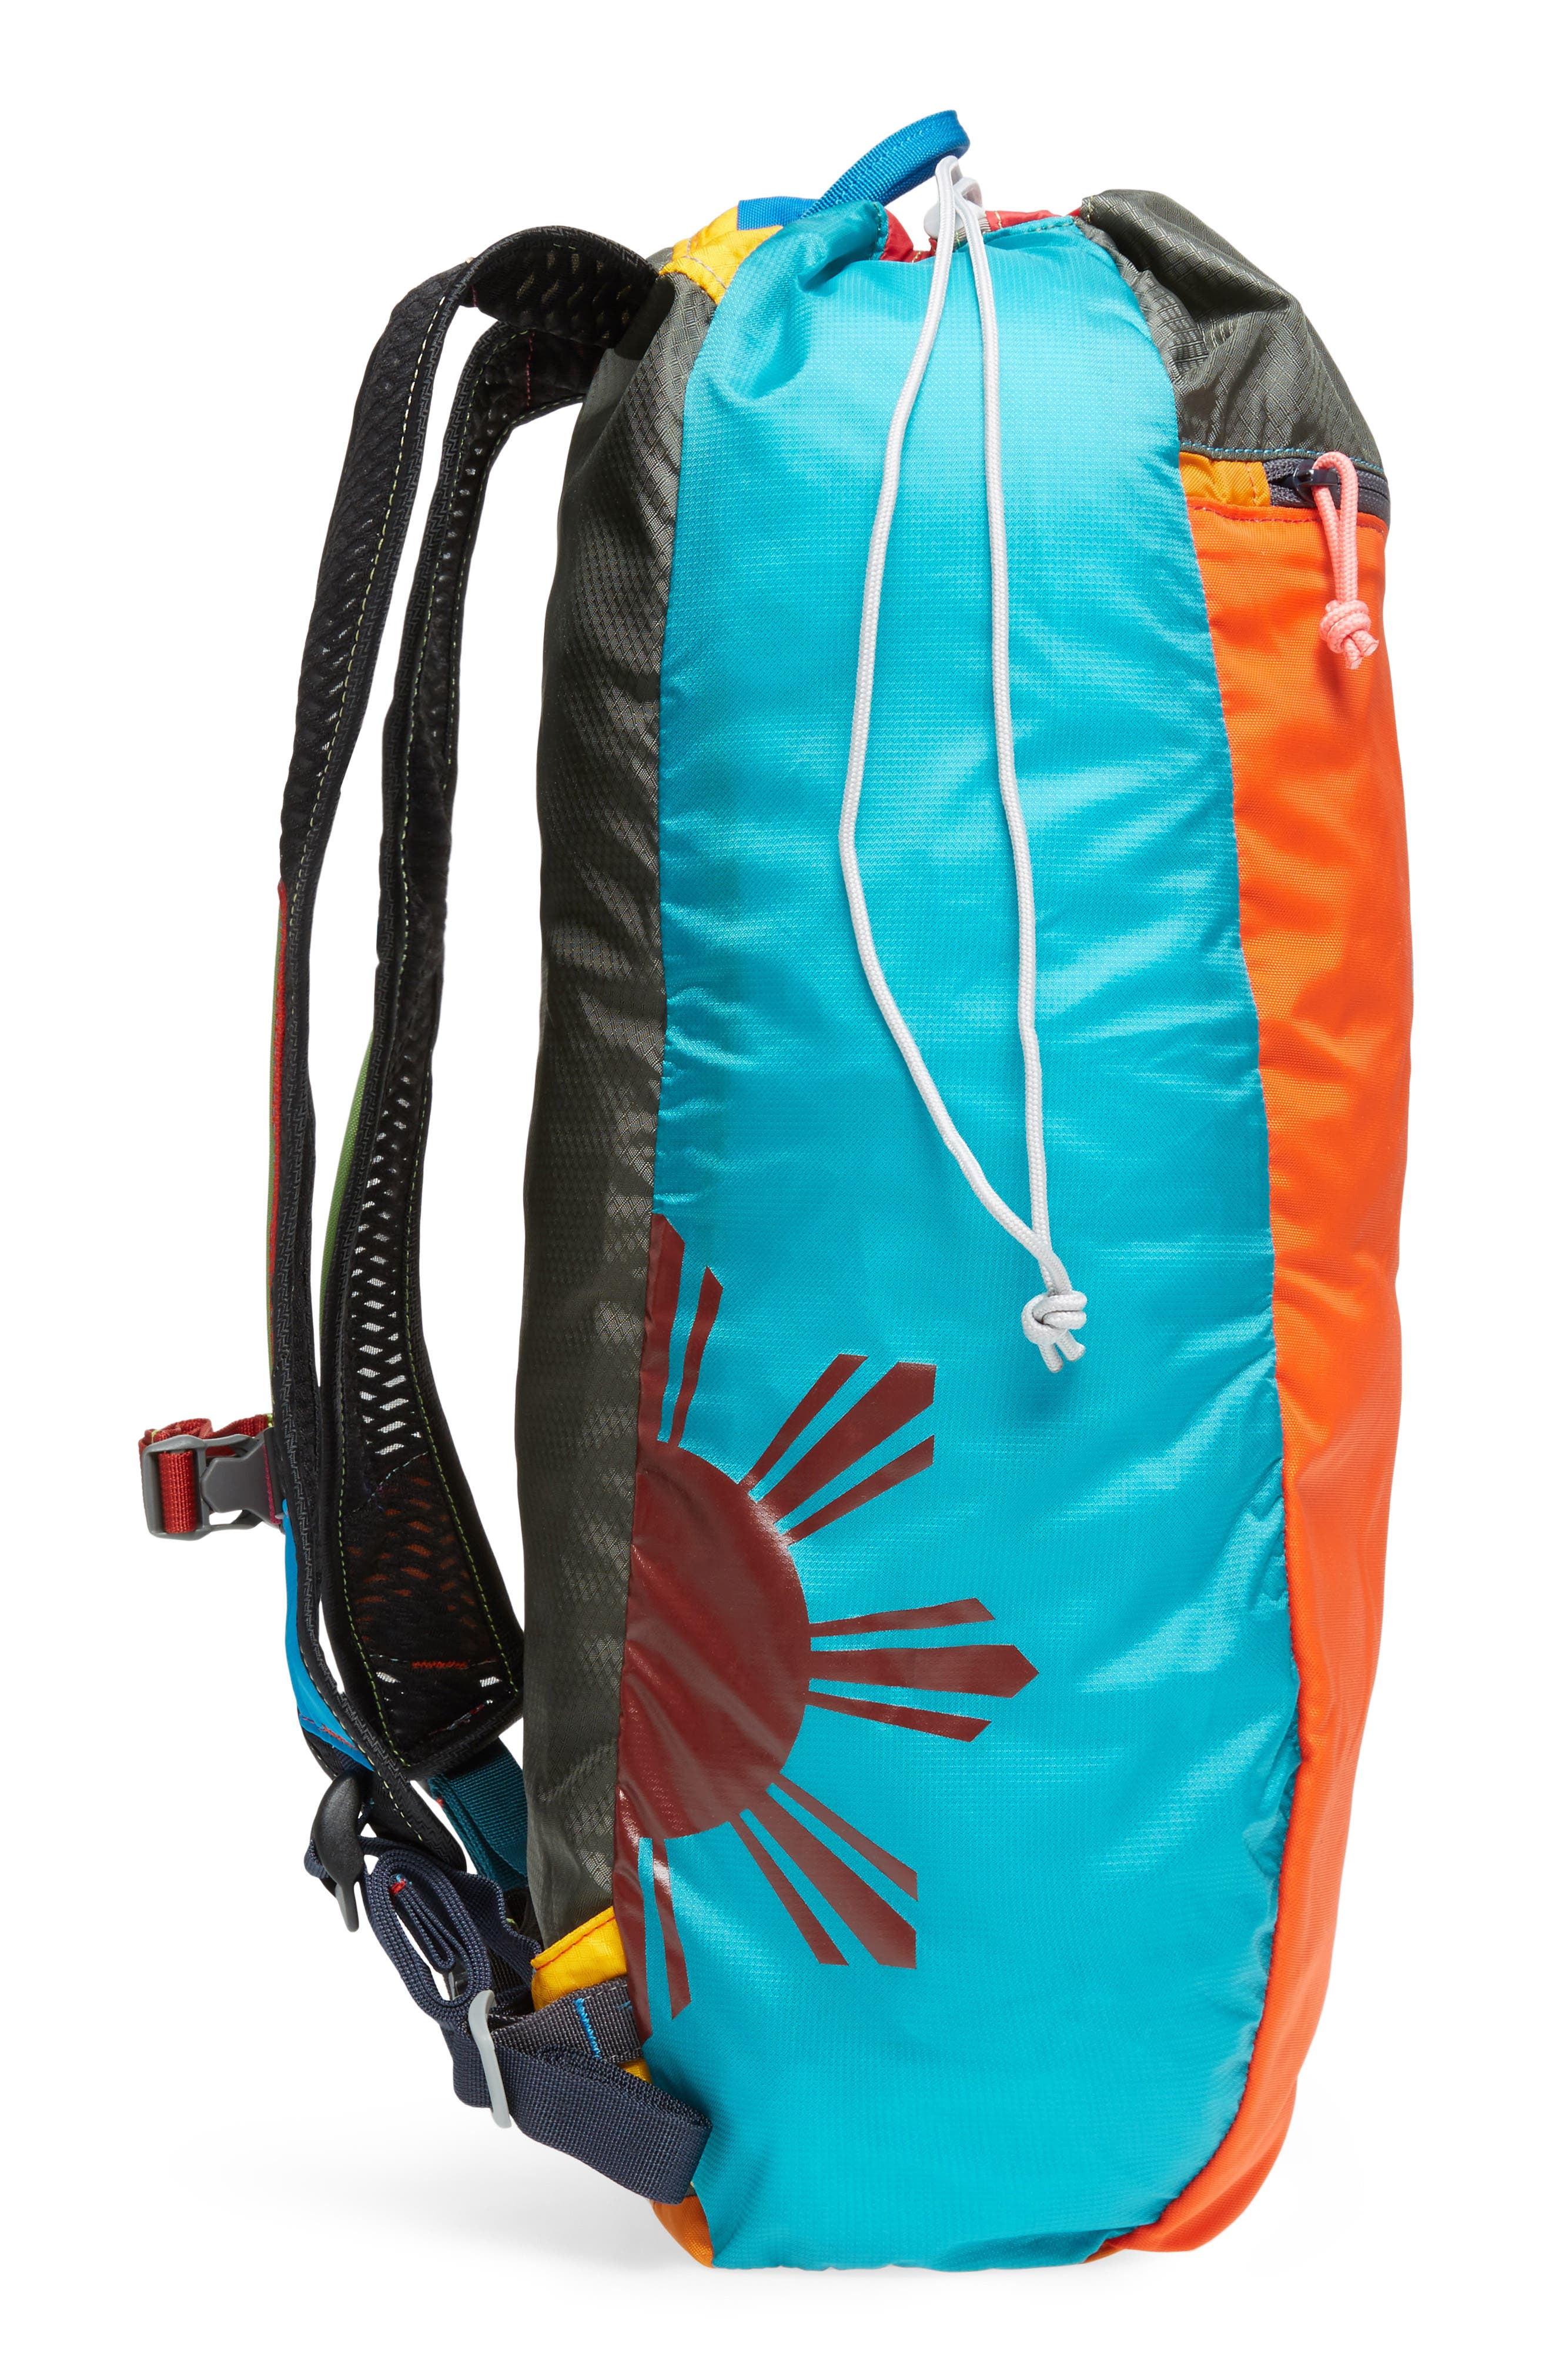 Luzon Del Día One of a Kind Ripstop Nylon Daypack,                             Alternate thumbnail 5, color,                             Assorted